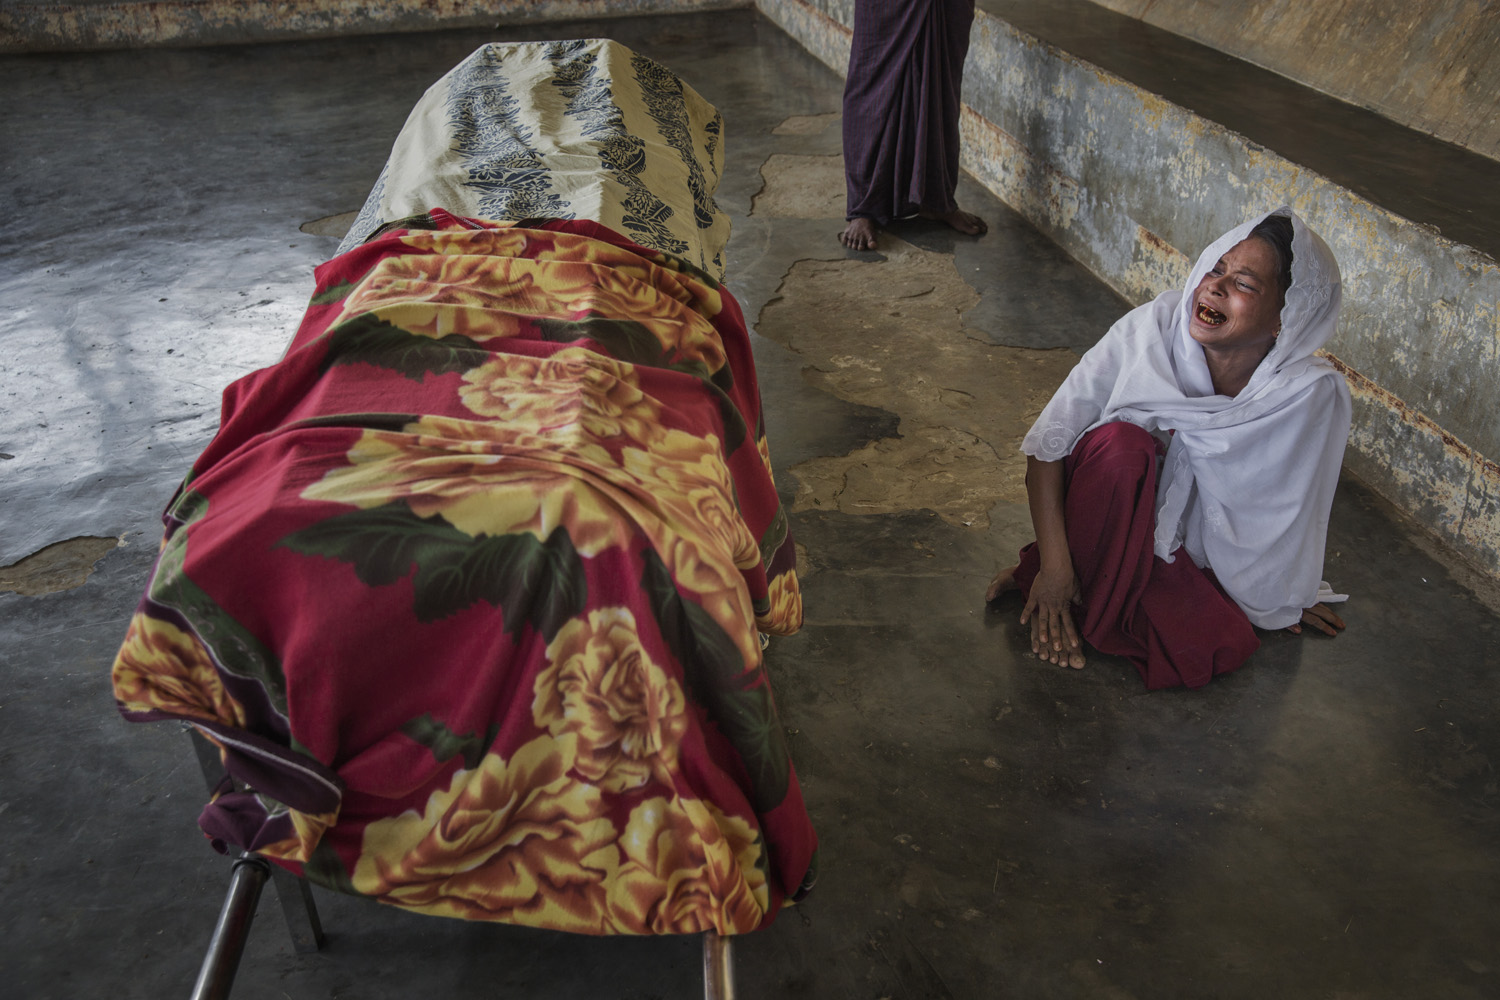 A mourner weeps as she sits by an internee's coffin. The Rohingya lack medical care since most NGOs are now barred from the camps.